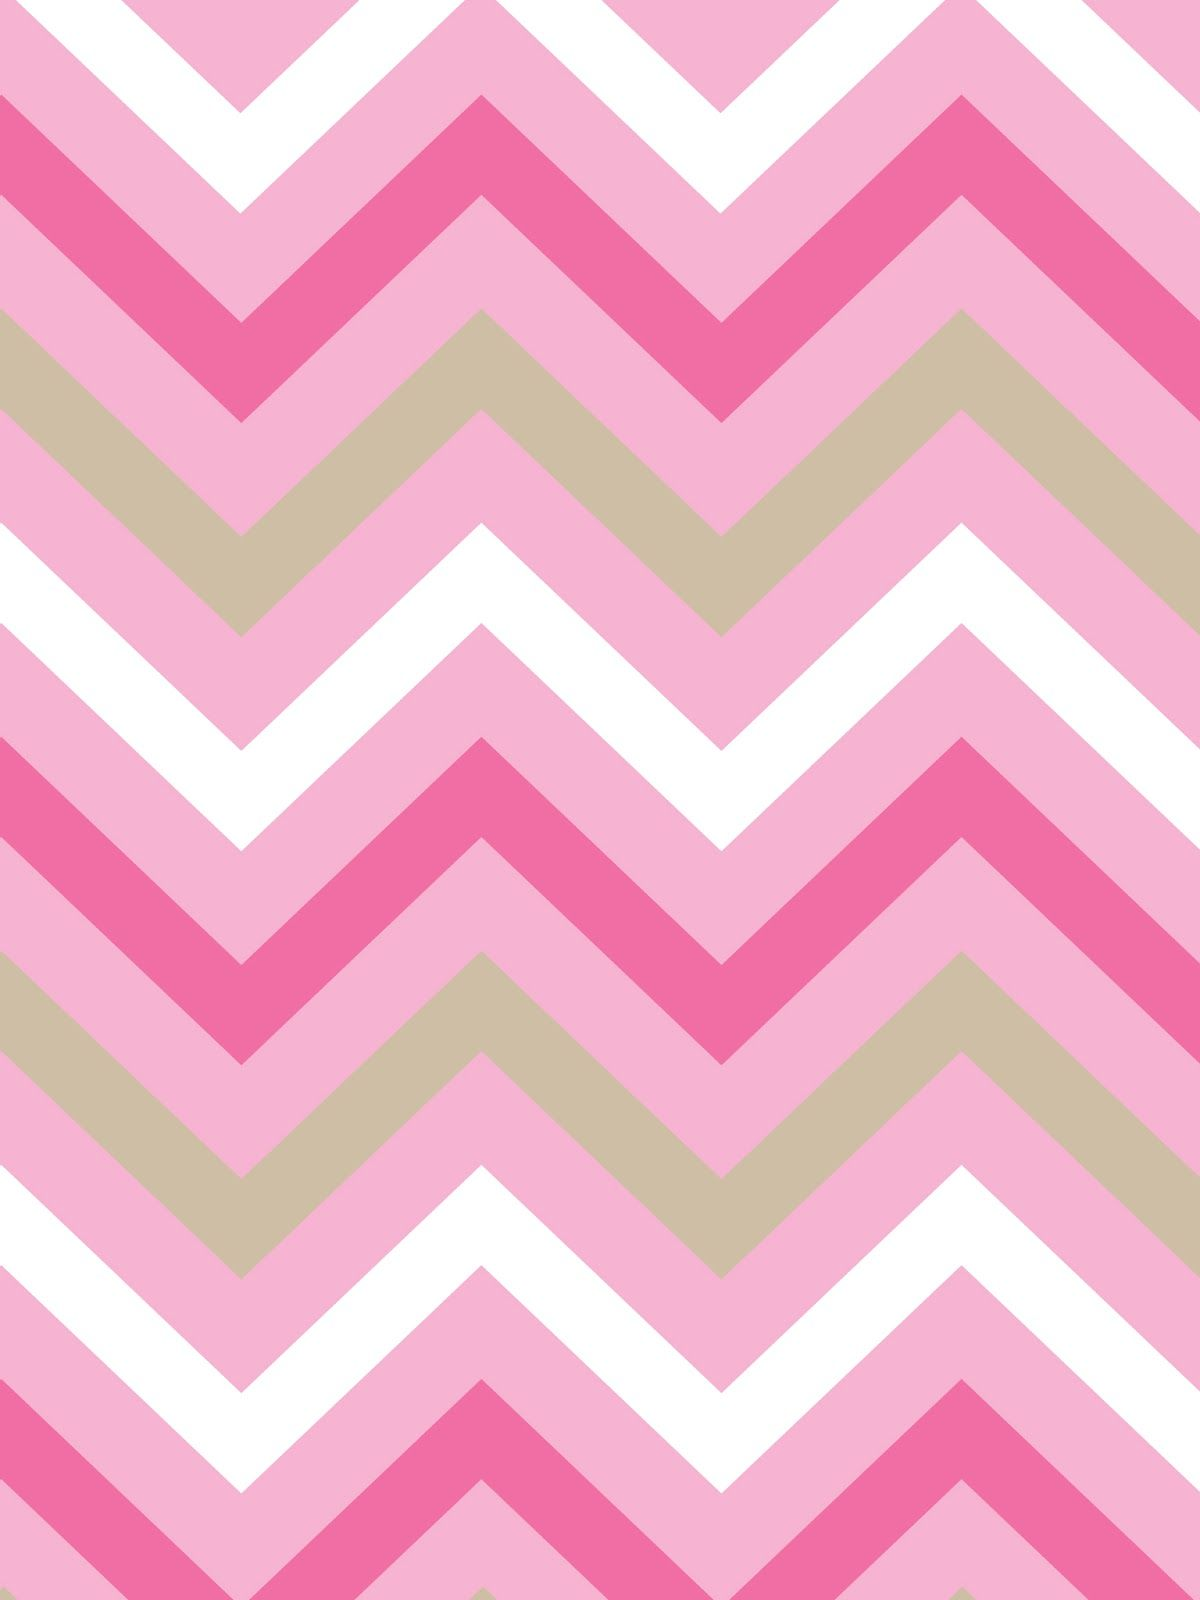 pin pink zig zag - photo #17